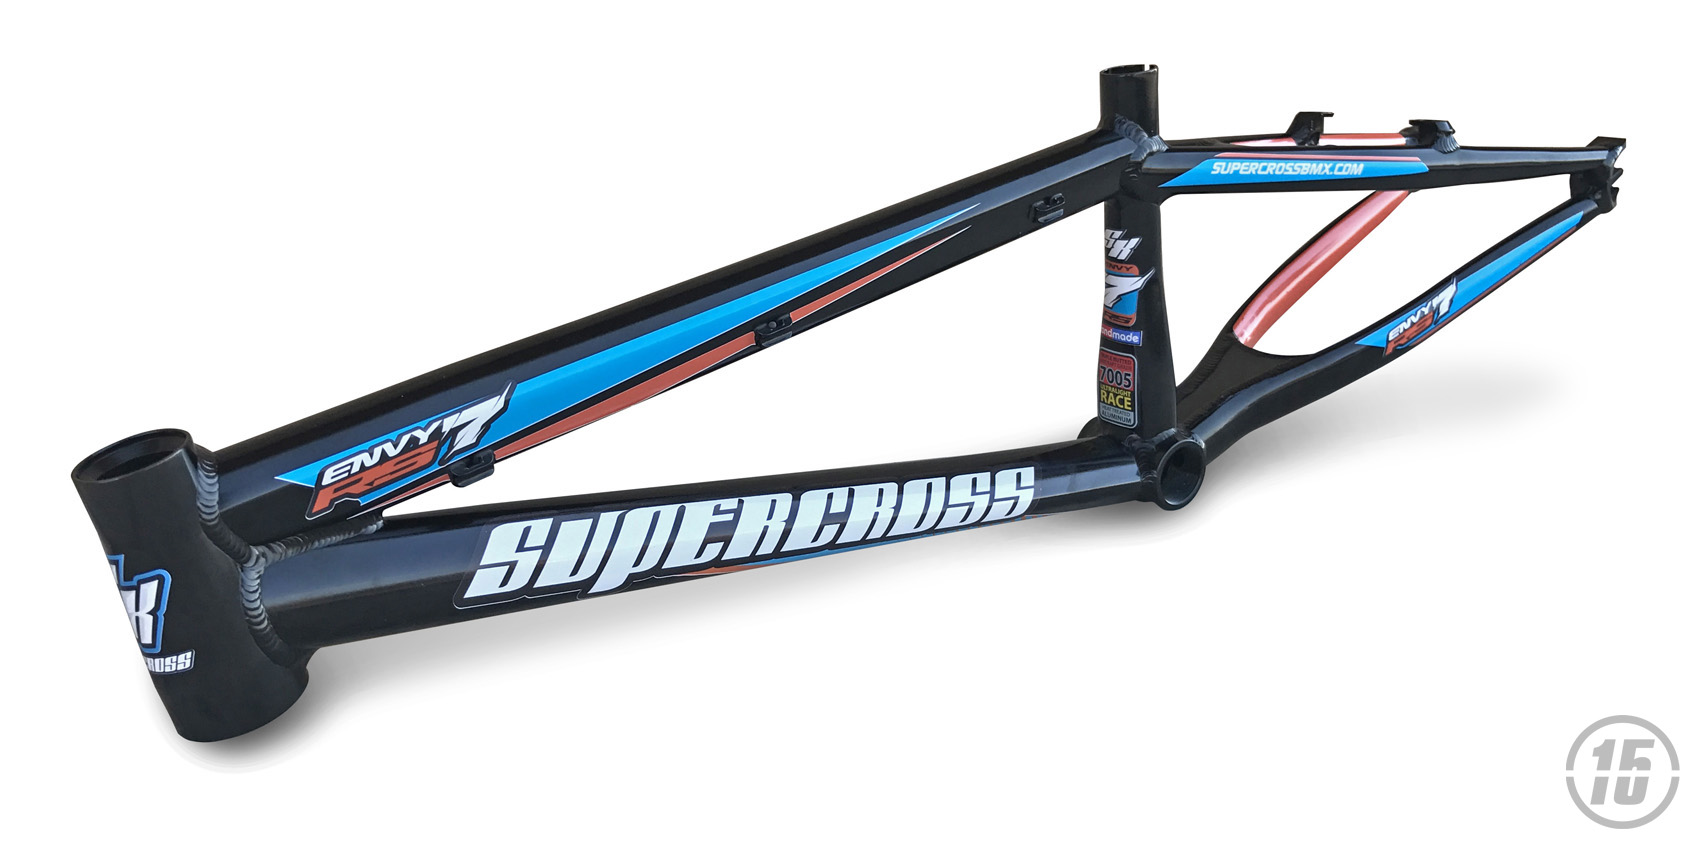 Supercross Envy RS7